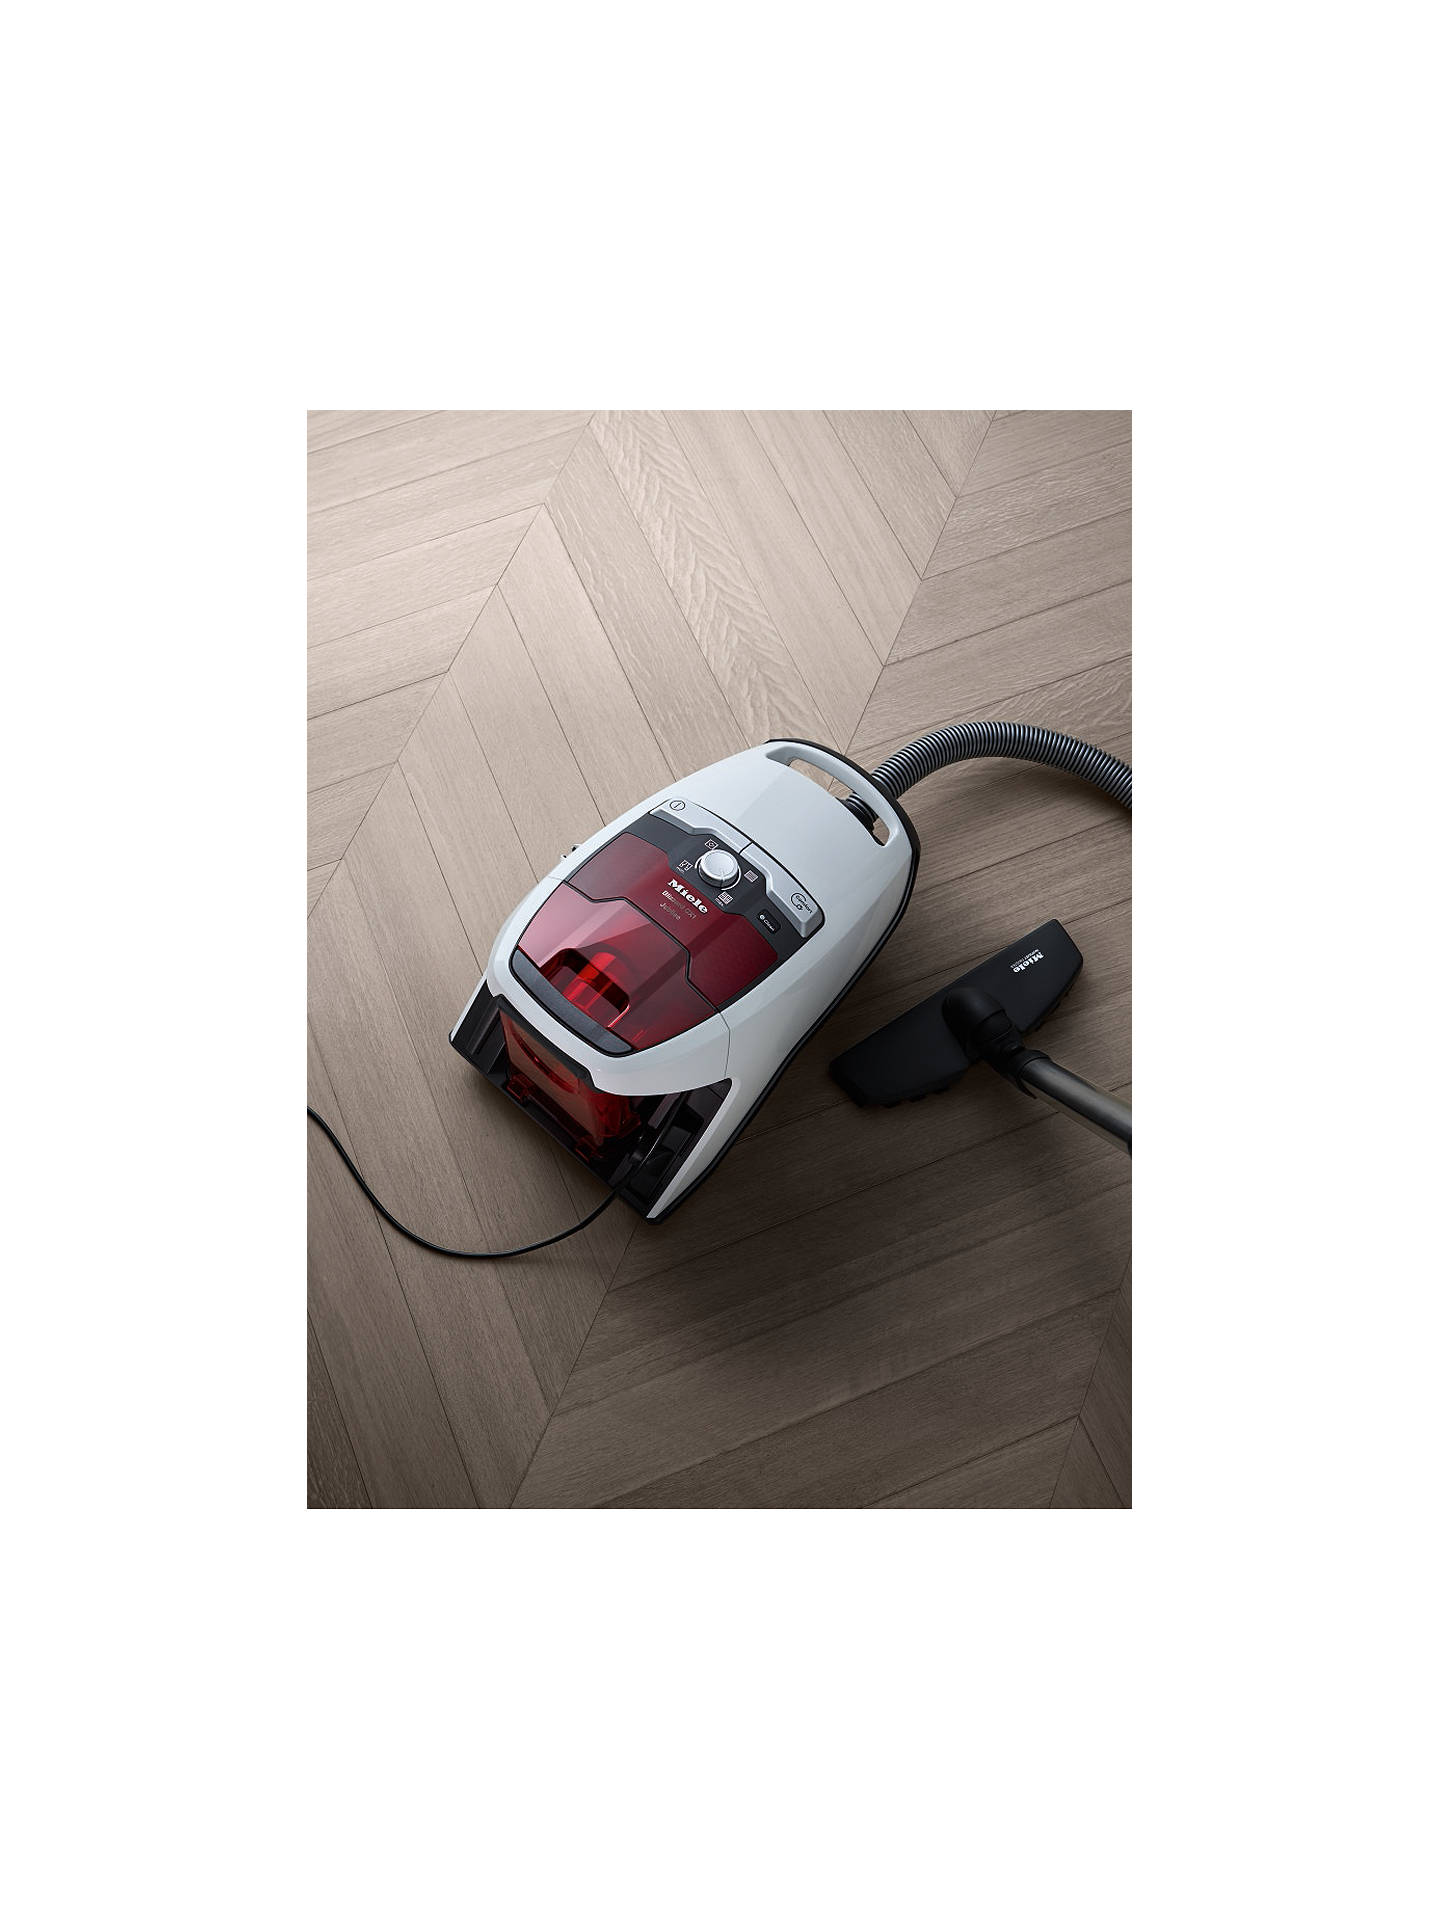 BuyMiele Blizzard CX1 Jubilee PowerLine Bagless Cylinder Vacuum Cleaner Online at johnlewis.com